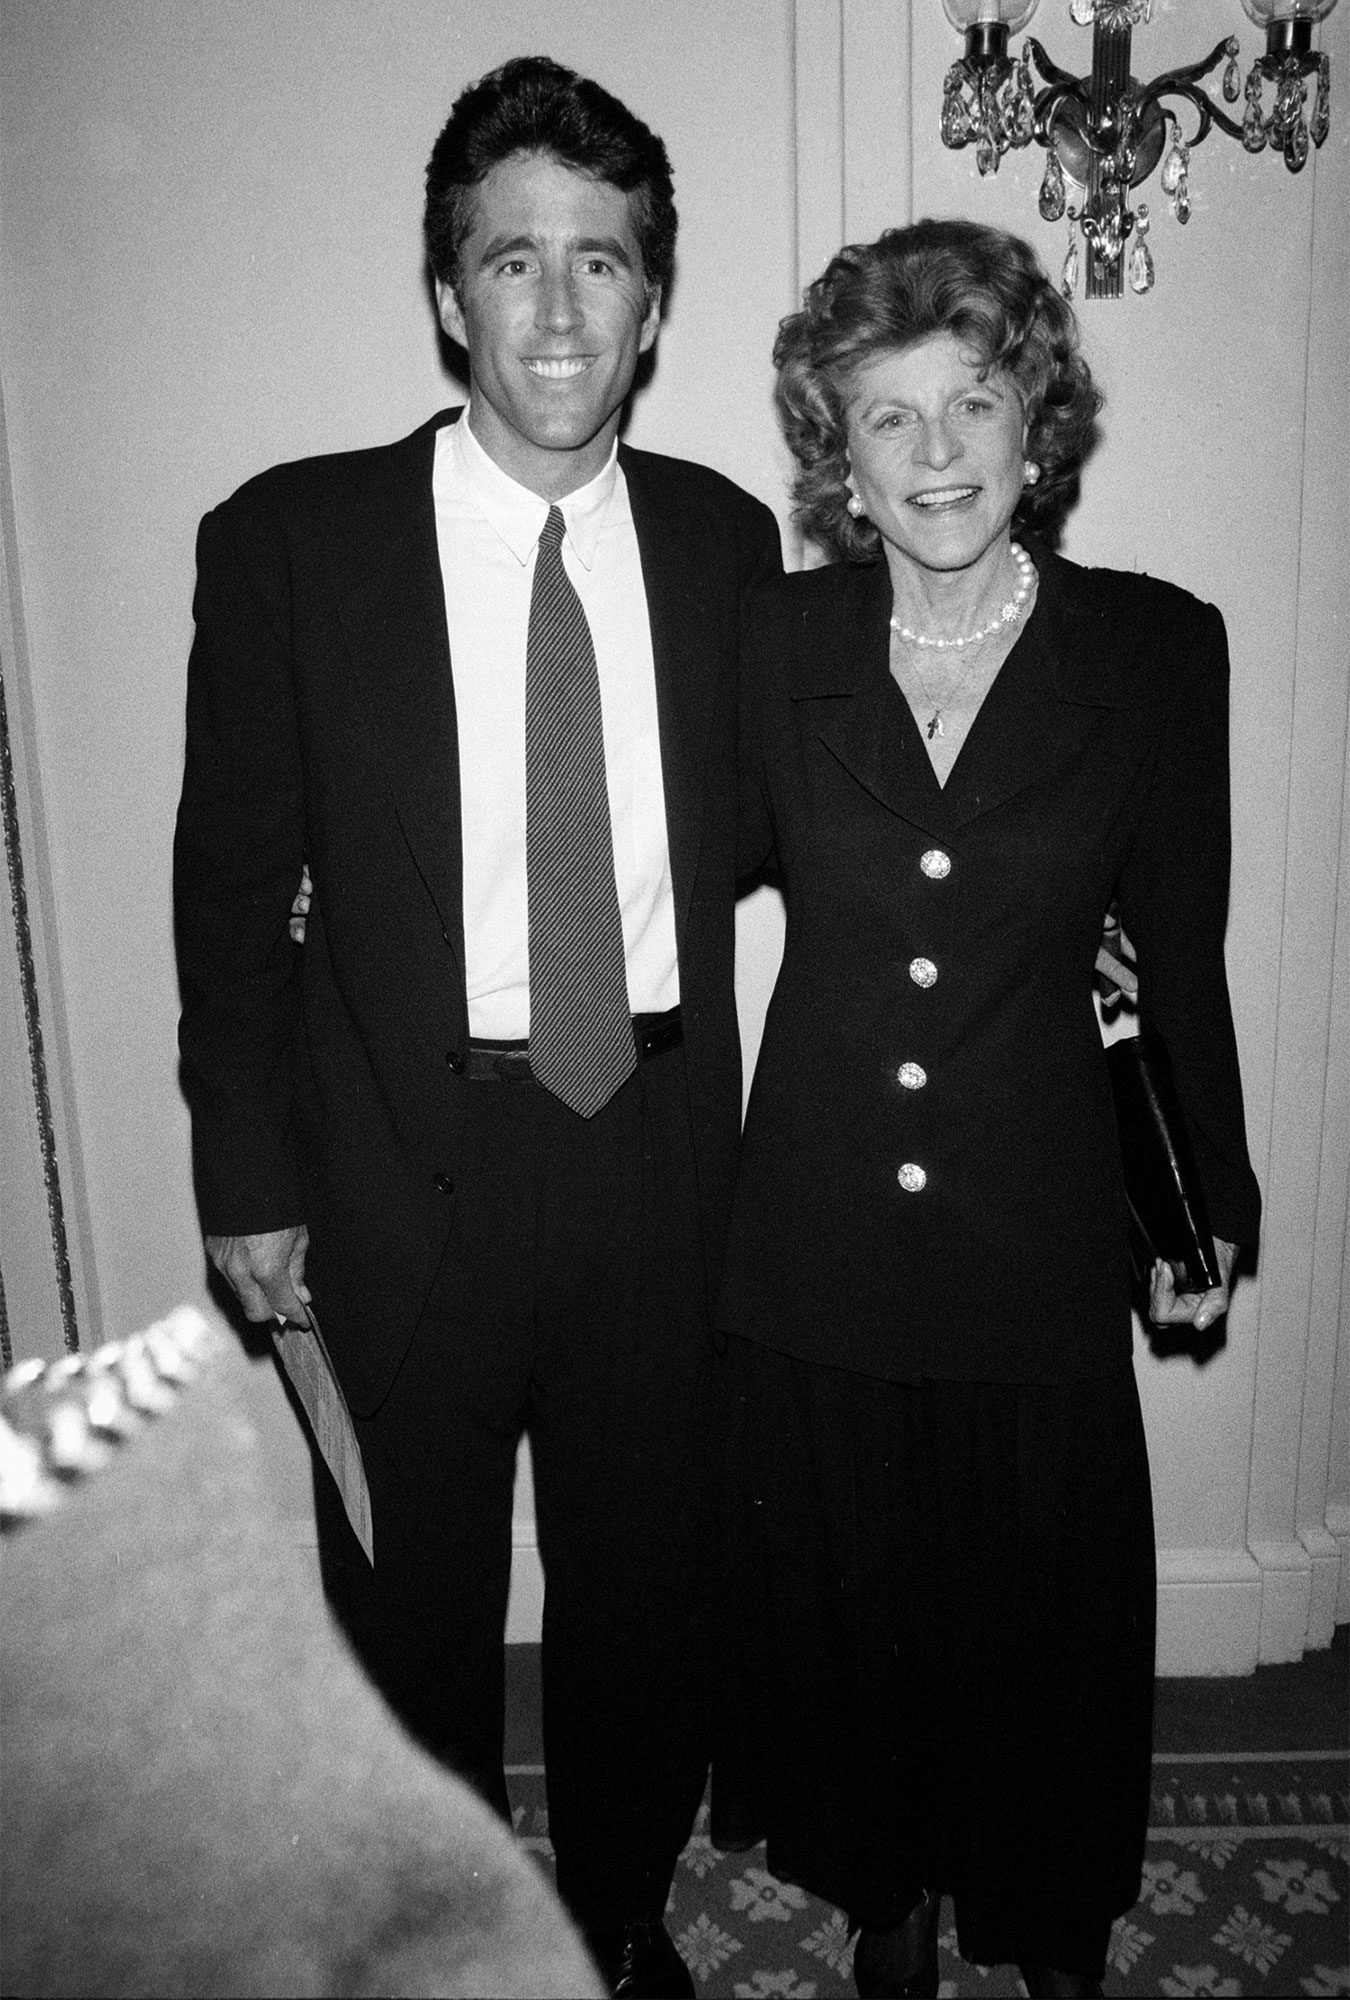 Patricia Kennedy Lawford and Christopher Lawford